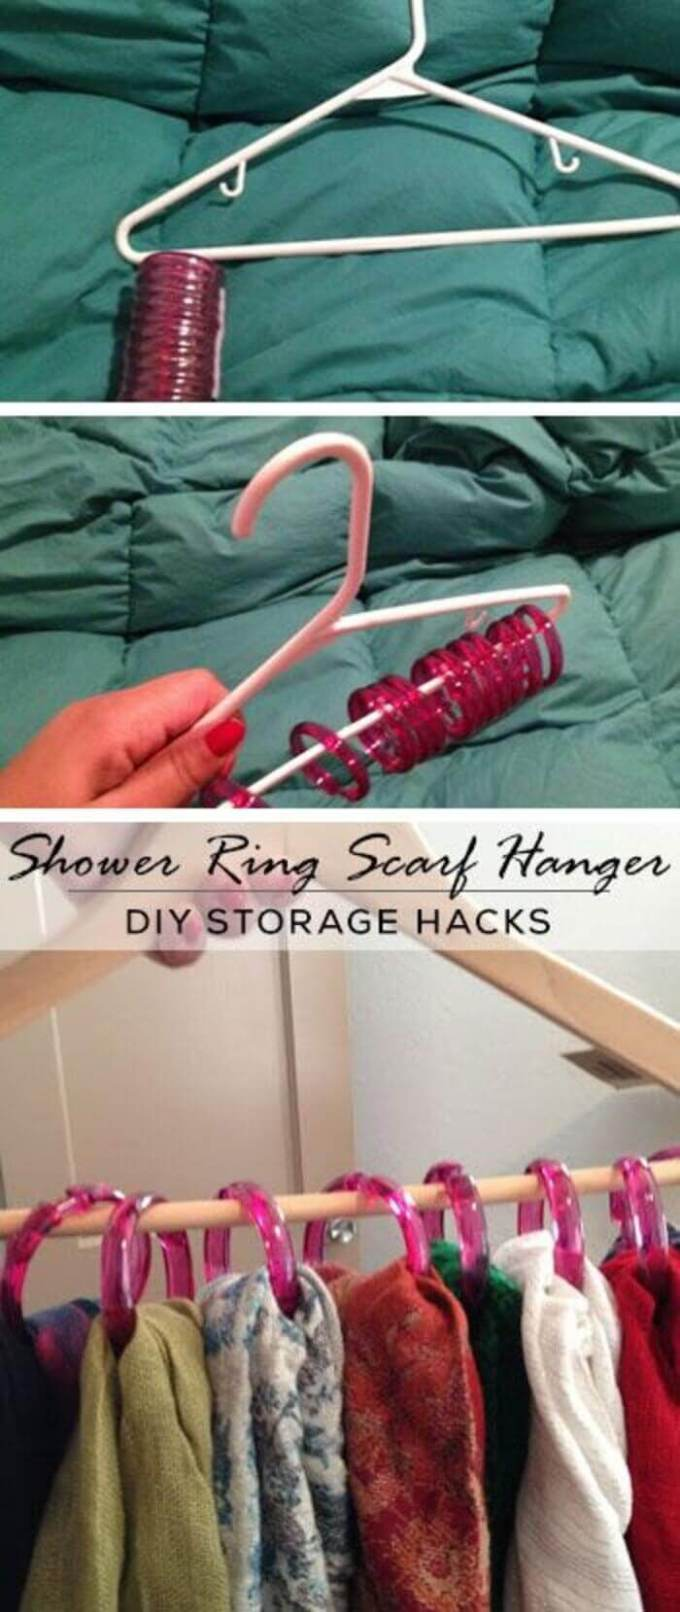 Storage Ideas for Small Spaces - Simple Shower Ring Scarf Storage - Harpmagazine.com